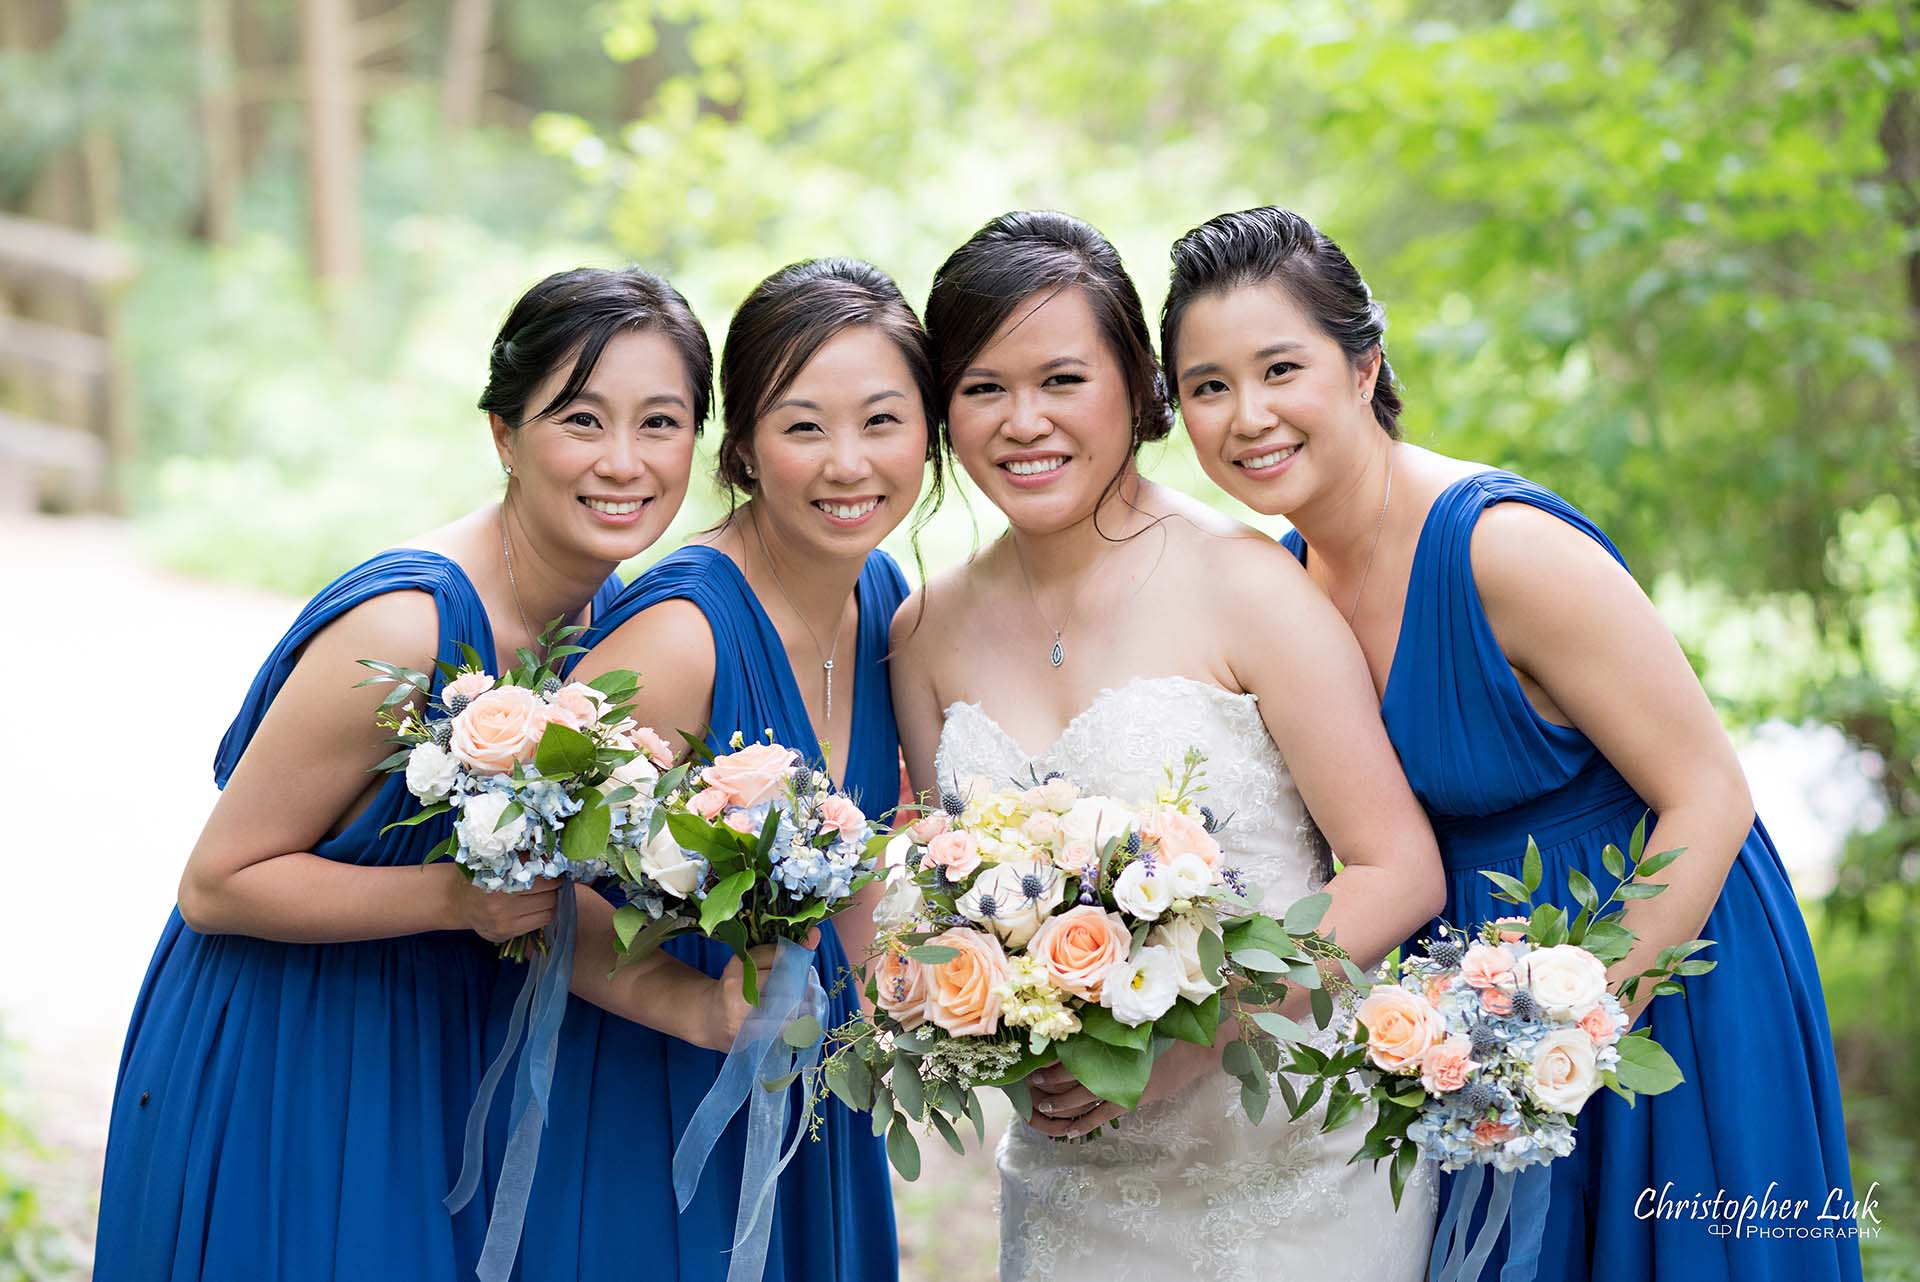 Christopher Luk Toronto Christian Community Church Kleinburg McMichael Art Gallery Presidente Banquet Hall Vaughan Wedding Photographer Bride Bridal Party Bridesmaids Matron Maid of Honour Natural Candid Photojournalistic Forest Woods Wooded Area Tall Trees Blue Dresses Smile Close Up Detail